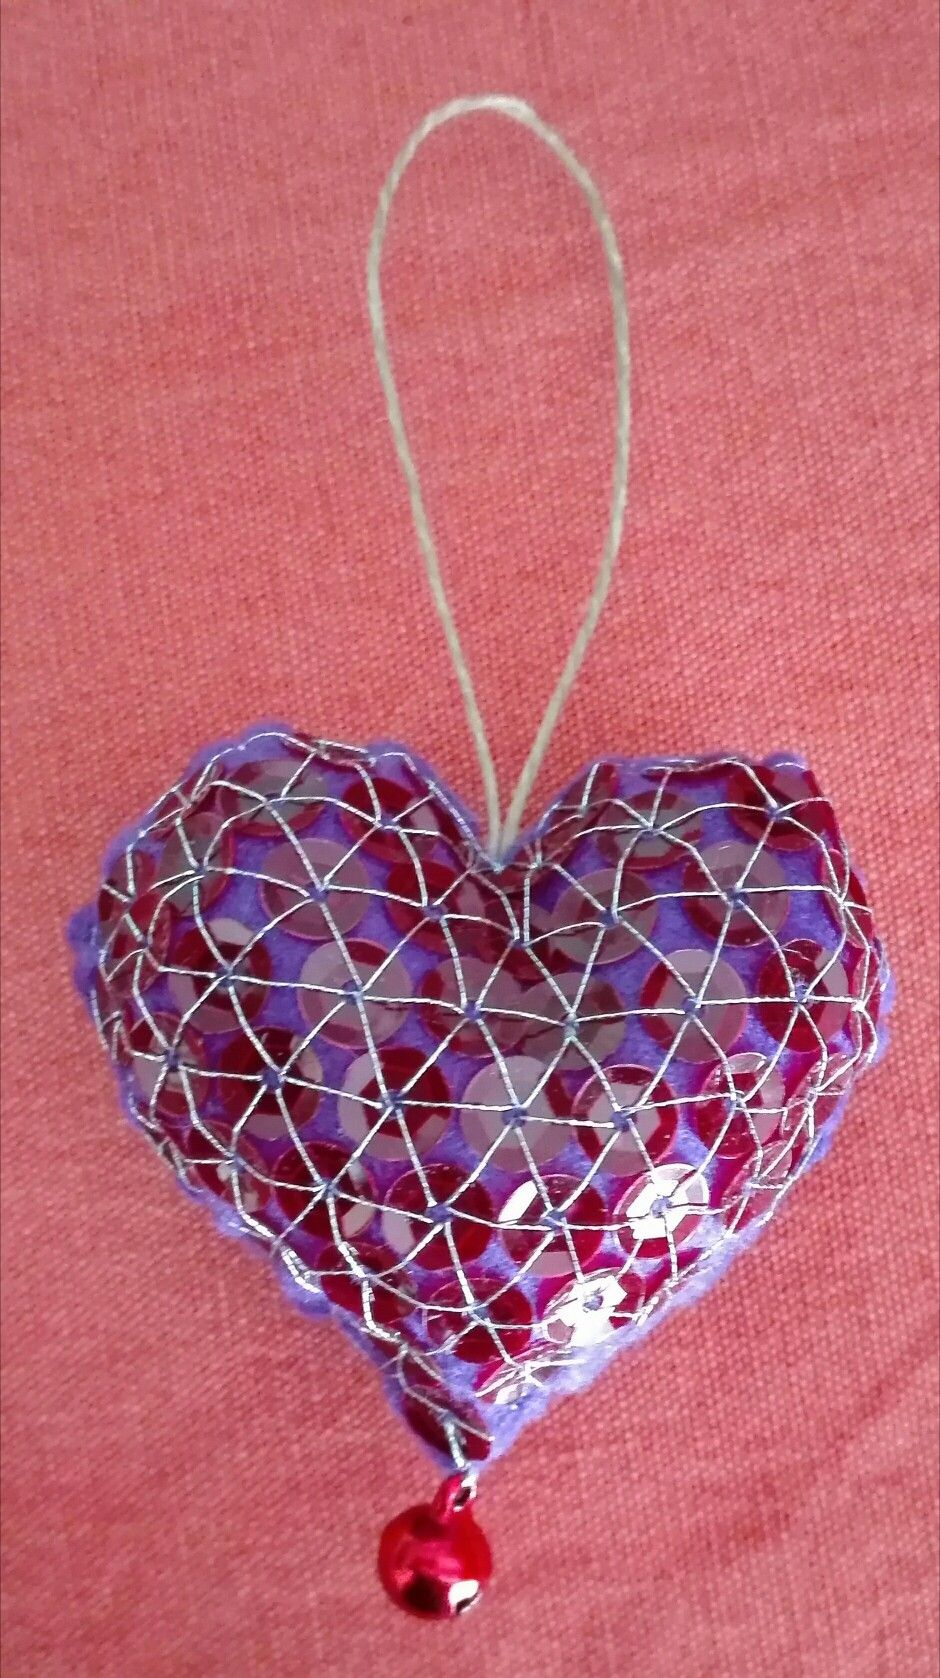 62be8b5815 heart for grazia - 22 febbraio 2017 - handmade by mariarosa - violet felt,  bell and 109 red paillettes.